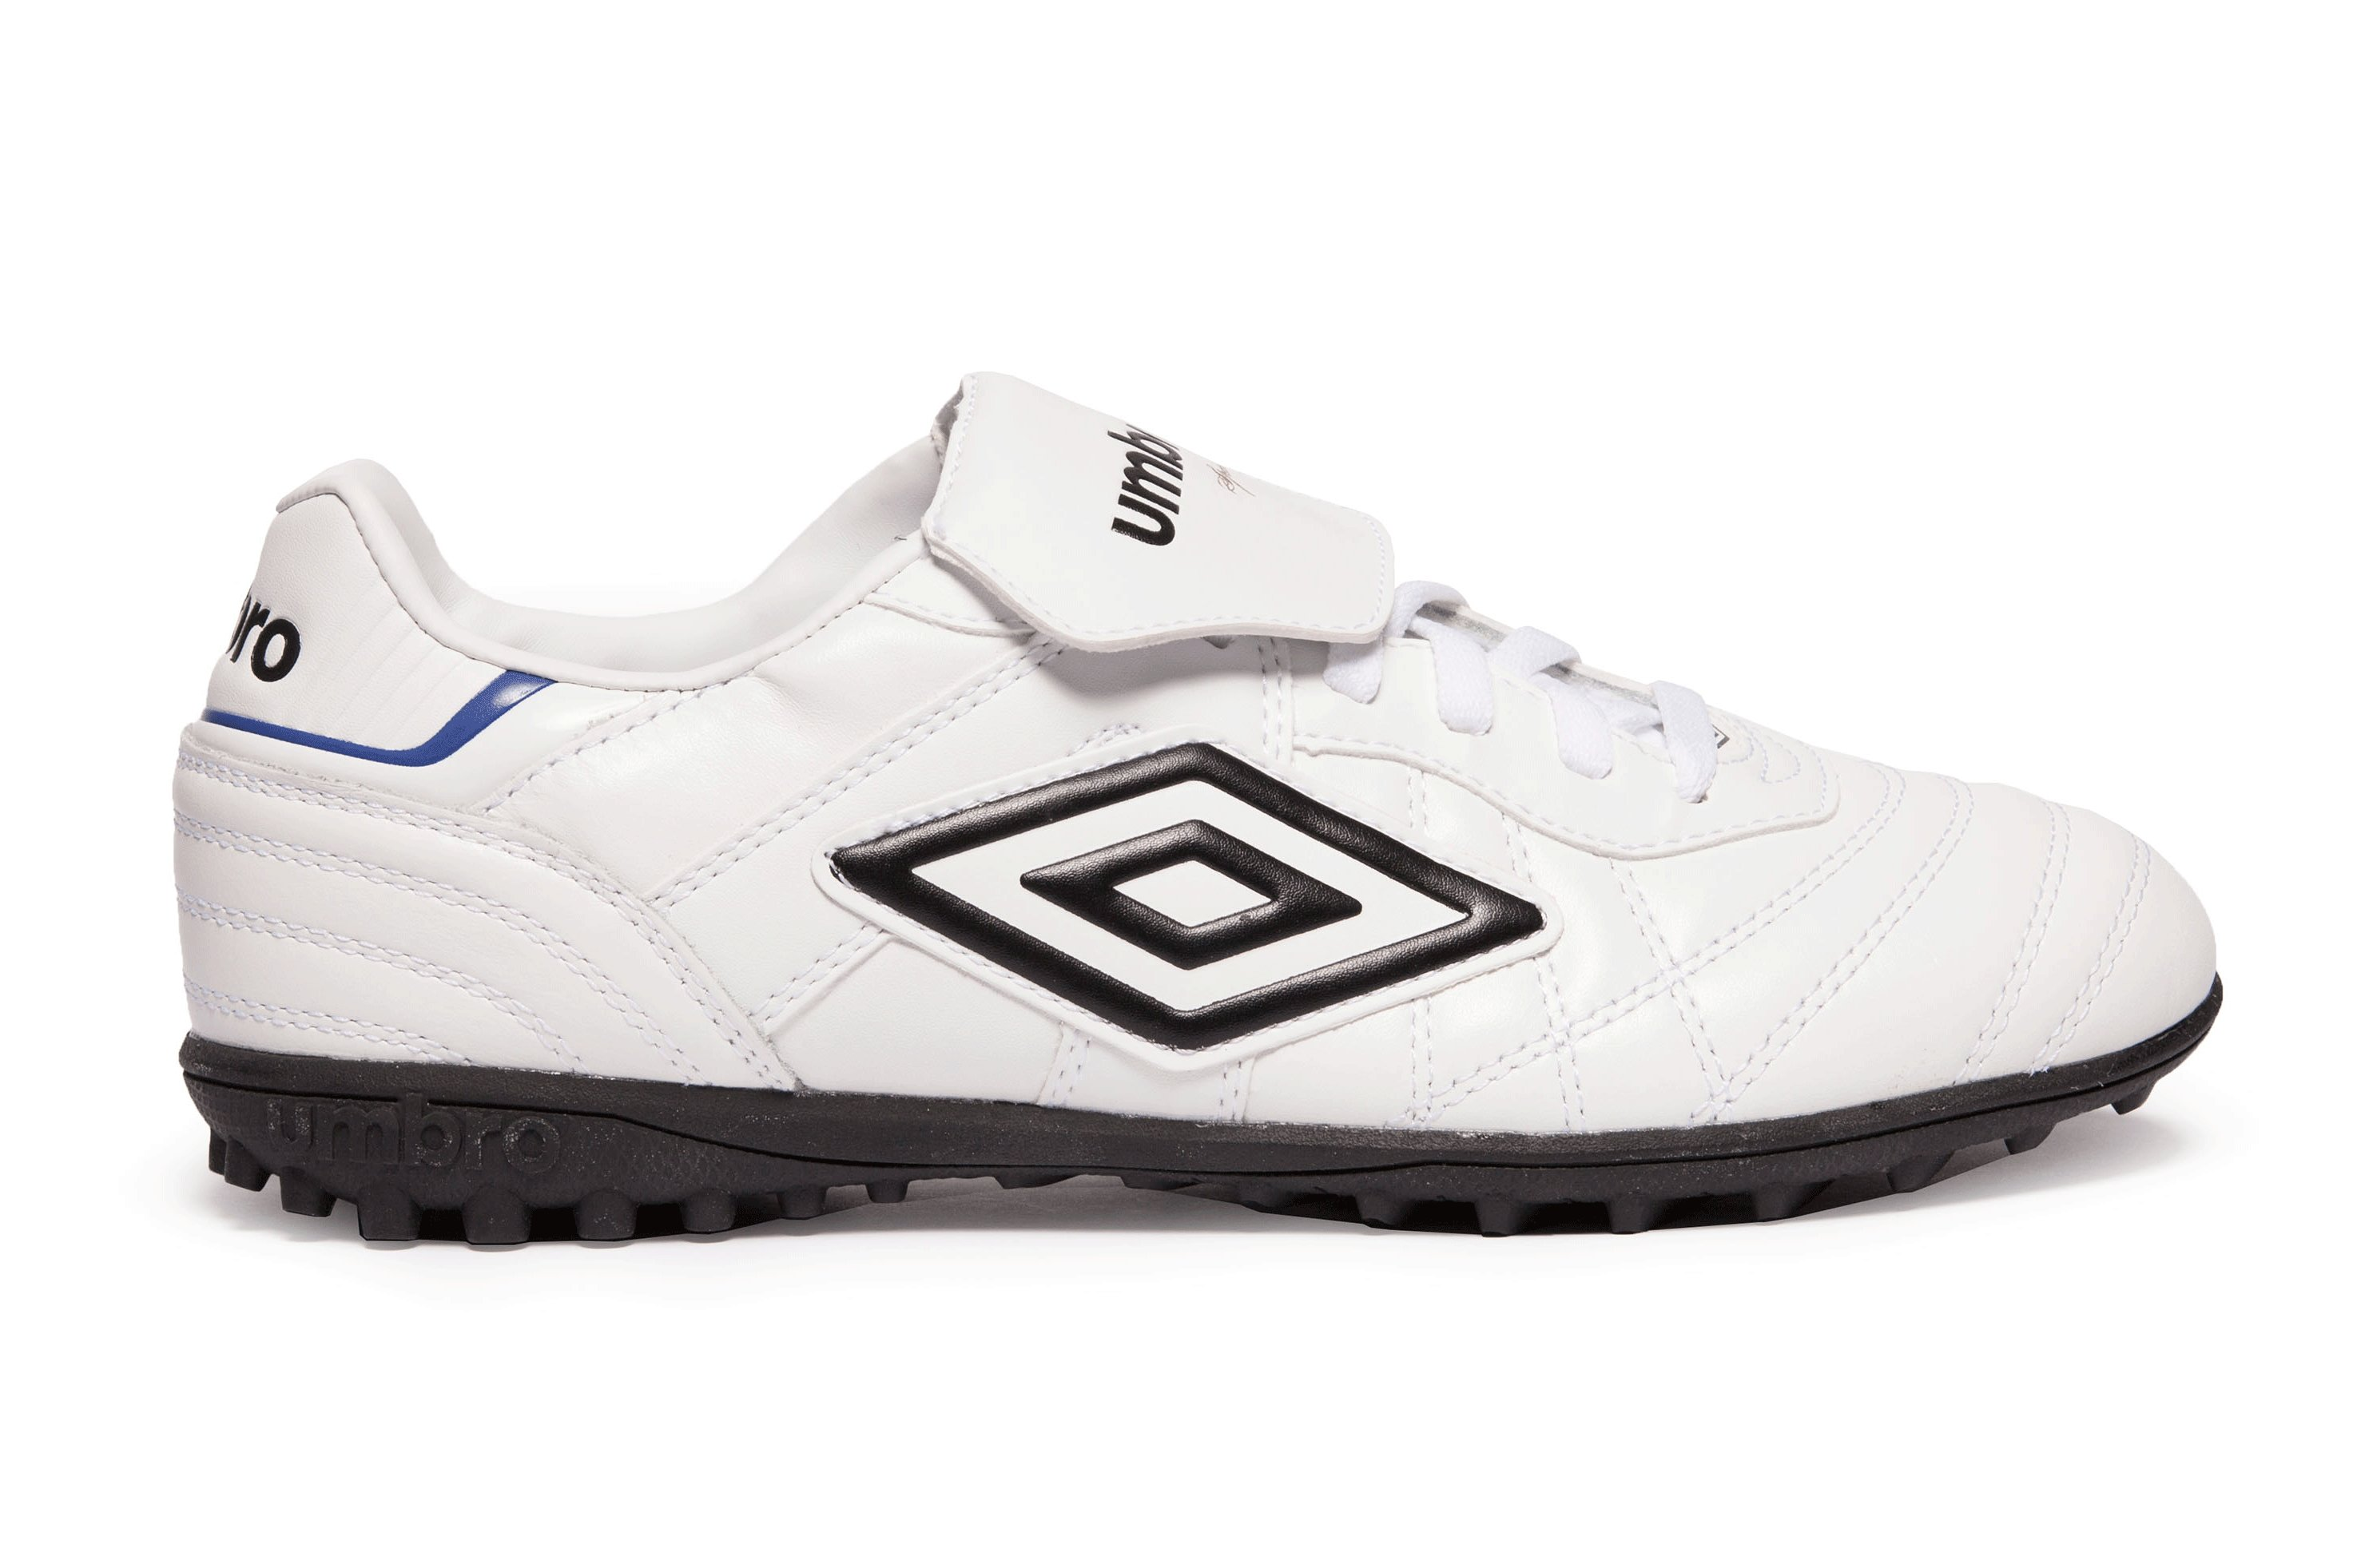 6dd811773100 View the SPECIALI ETERNAL PREMIER - ASTRO TURF TRAINERS from the Menswear  collection